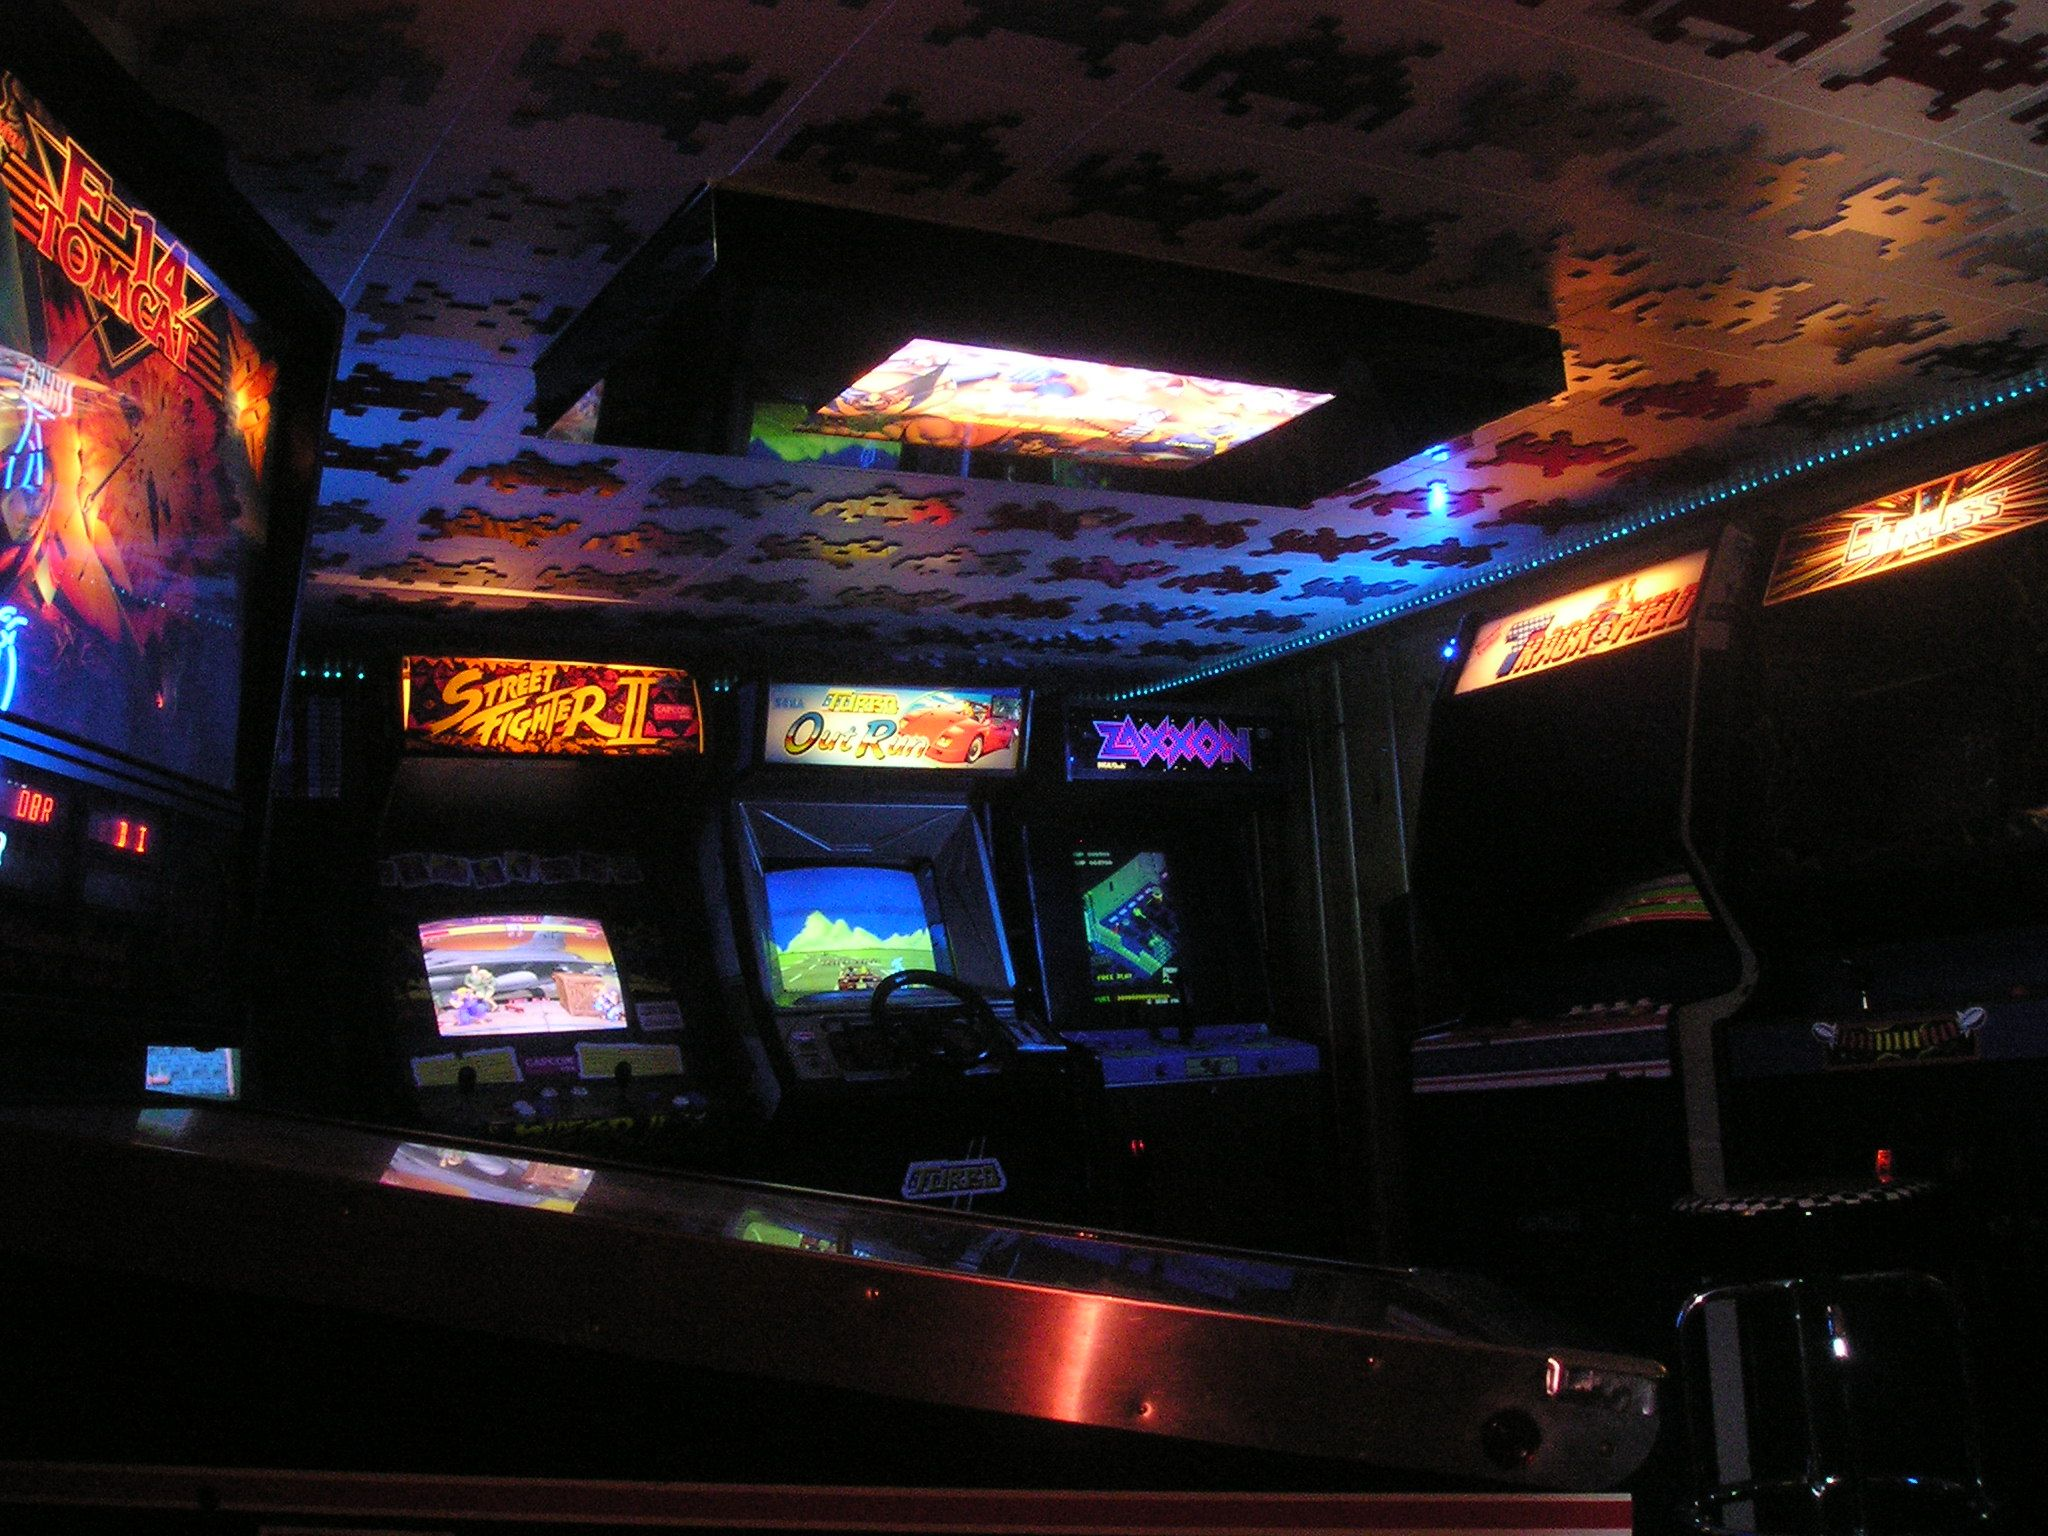 Space invaders ceiling tiles in home arcade something to think space invaders ceiling tiles in home arcade something to think about instead of standard ceiling tiles dailygadgetfo Choice Image